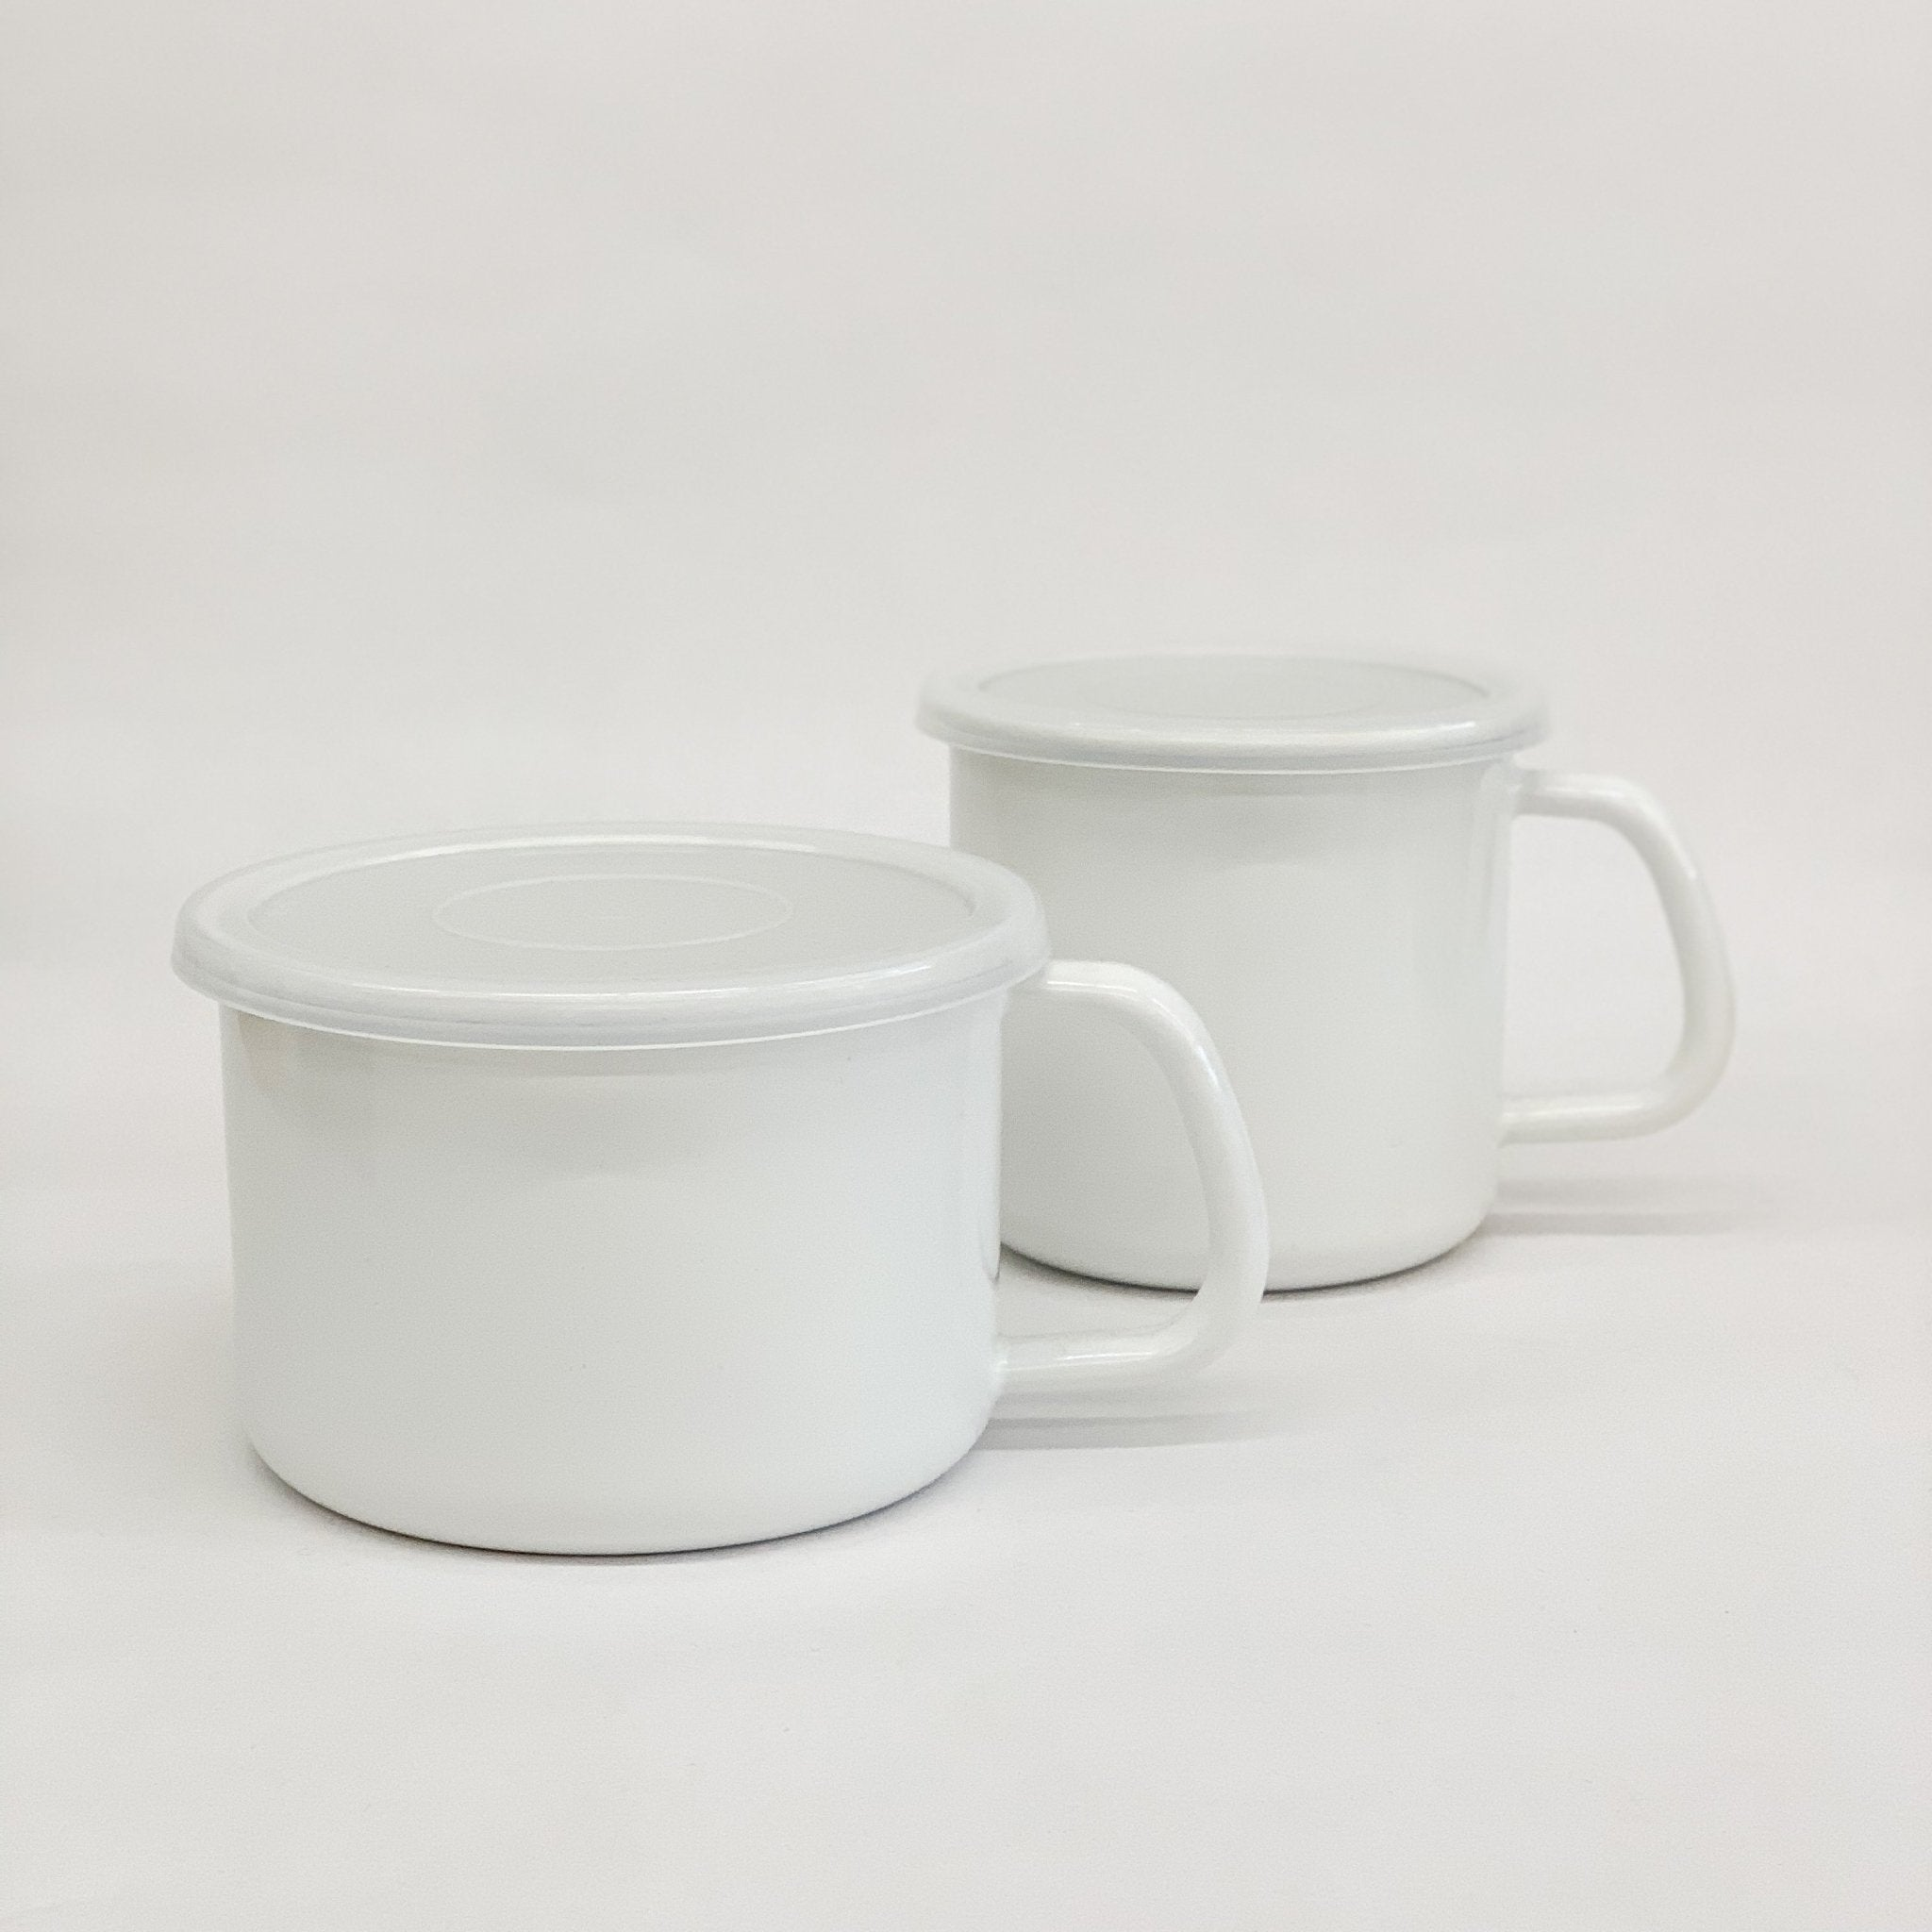 Kaico Enamel Food Containers - tortoise general store